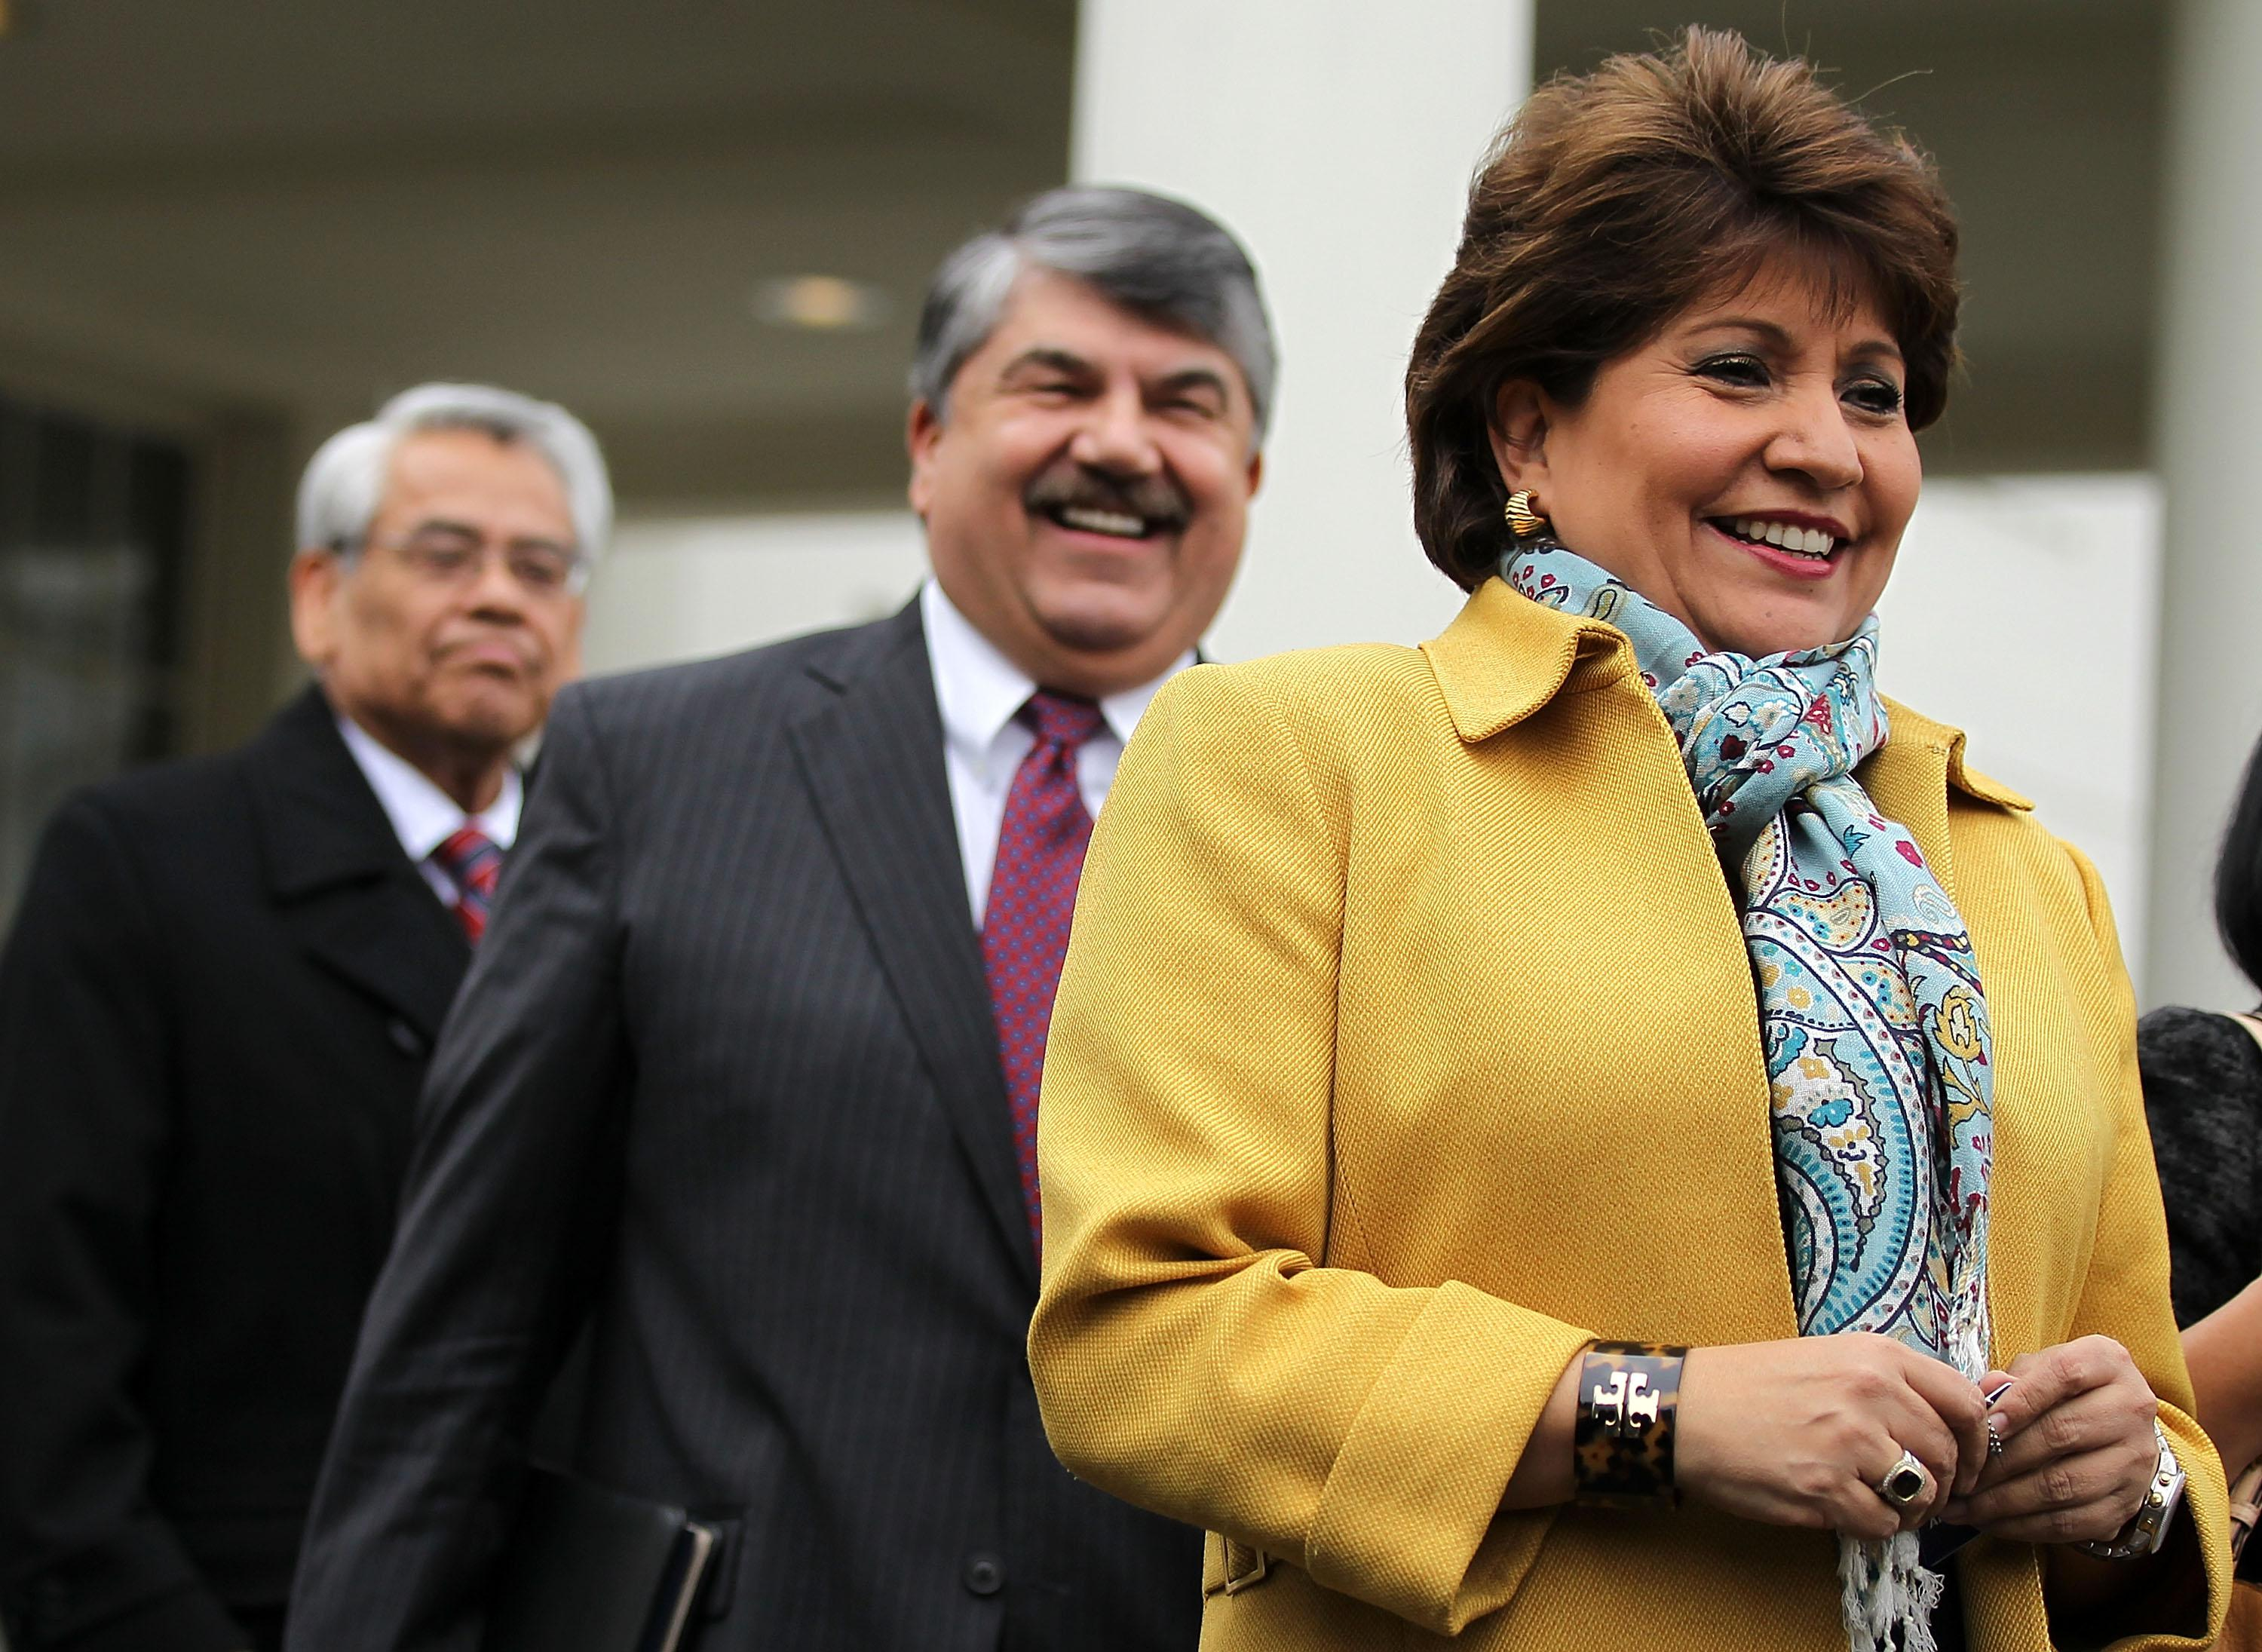 From left: Secretary-Treasurer of SEIU Eliseo Medina, AFL-CIO President Richard Trumka, and President and CEO of National Council of la Raza Janet Murguia come out from the West Wing of the White House after a meeting with President Barack Obama, Feb. 5, 2013, in Washington, D.C.